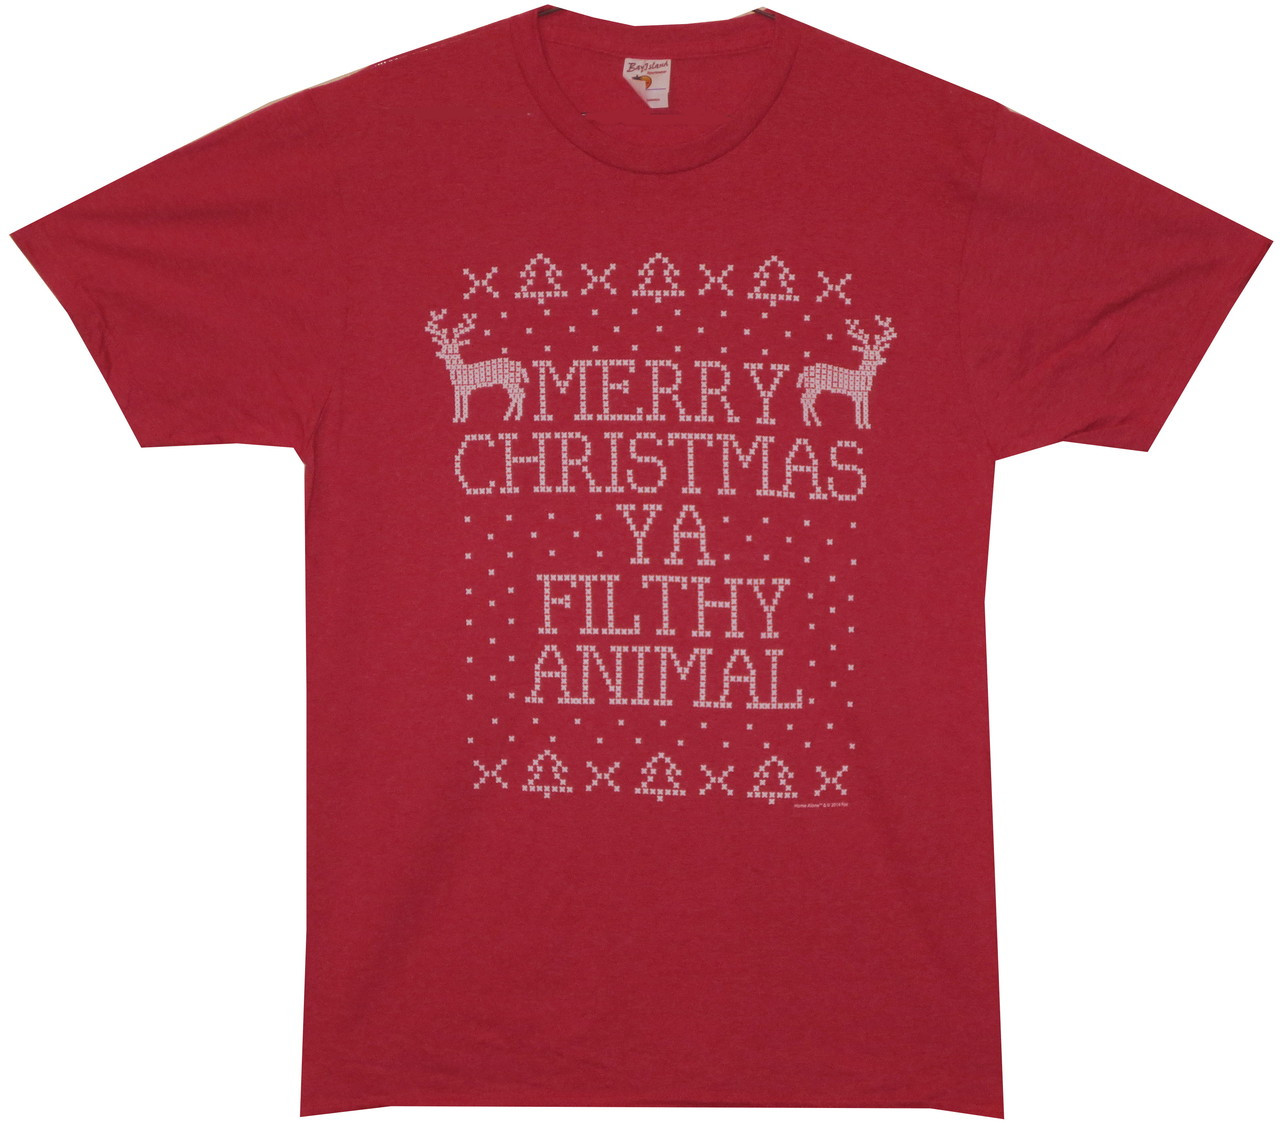 home alone merry christmas ya filthy animal t shirt - Merry Christmas Ya Filthy Animals